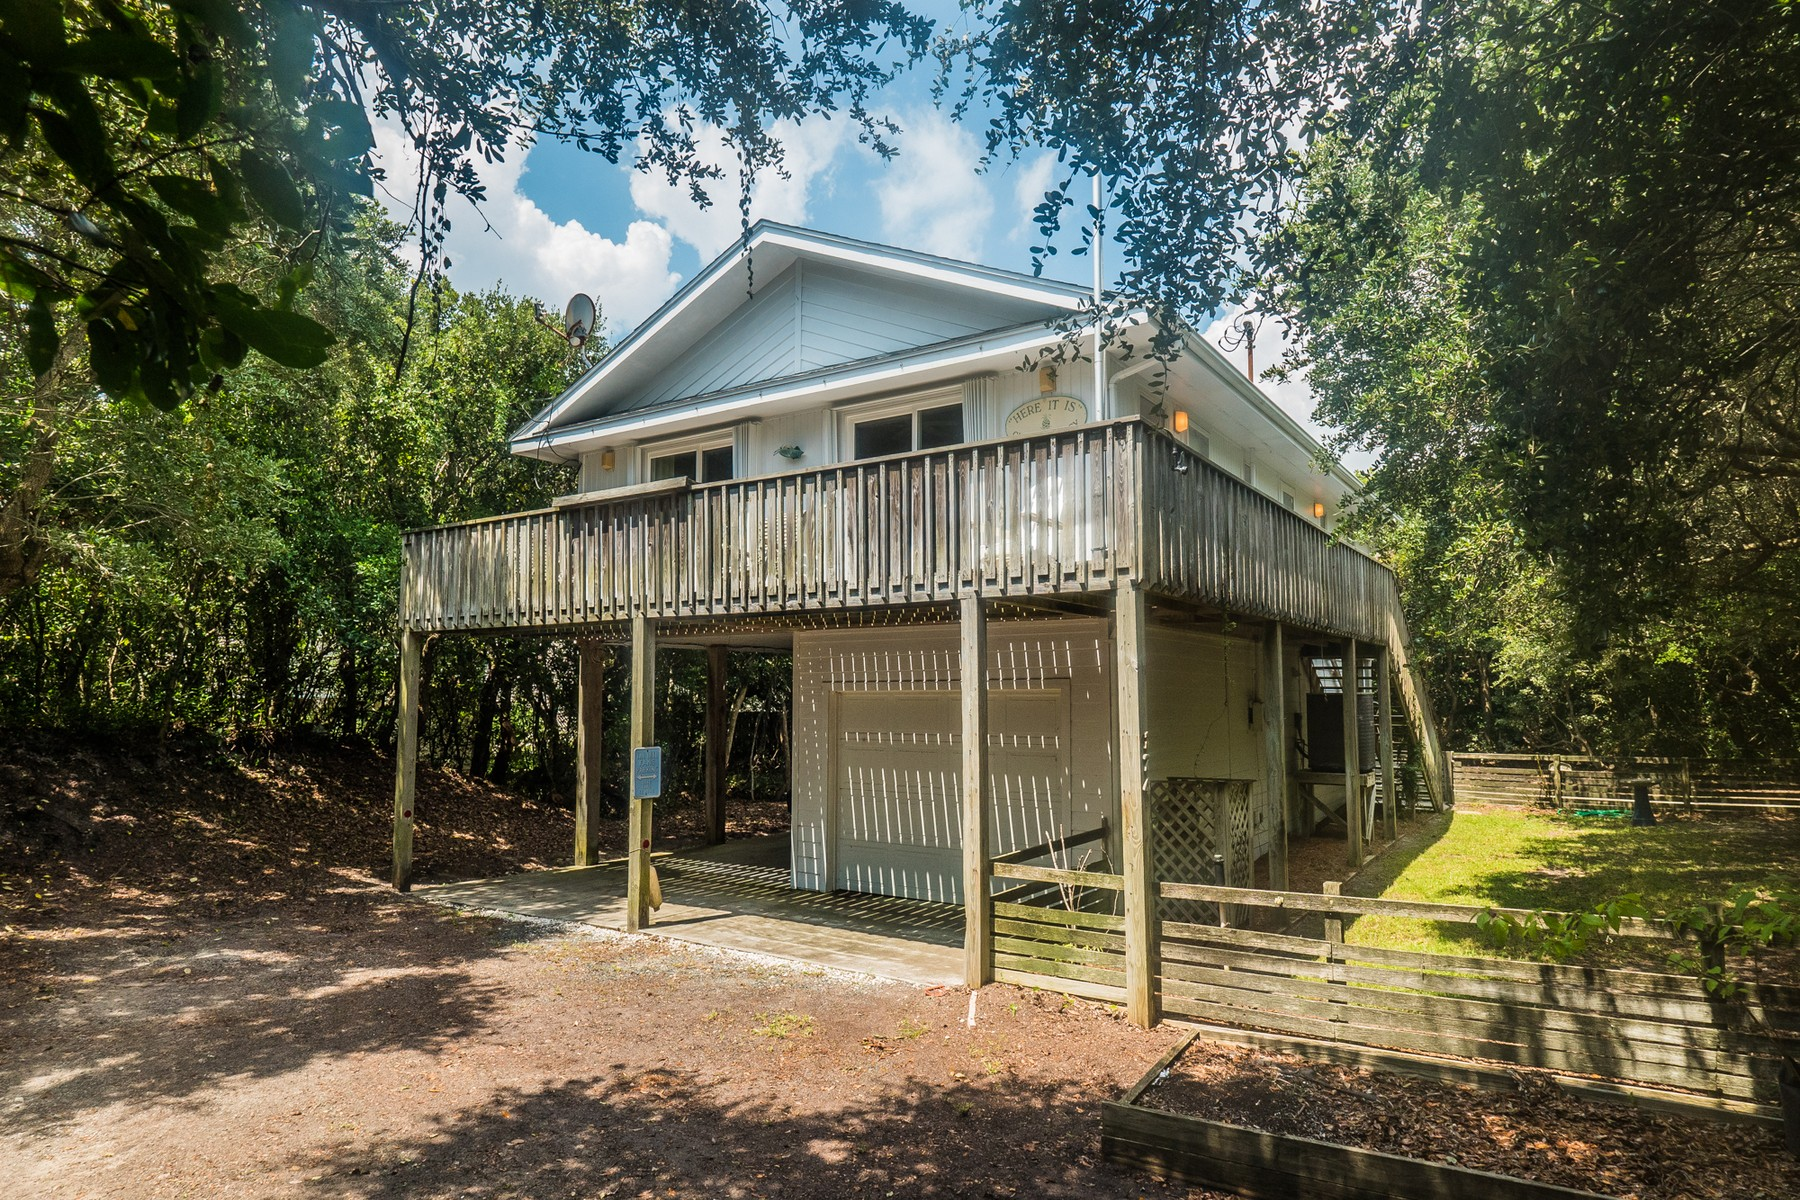 Single Family Home for Sale at Simplicity Awaits at this Beach House 474B N Anderson Boulevard, Topsail Beach, North Carolina, 28445 United States